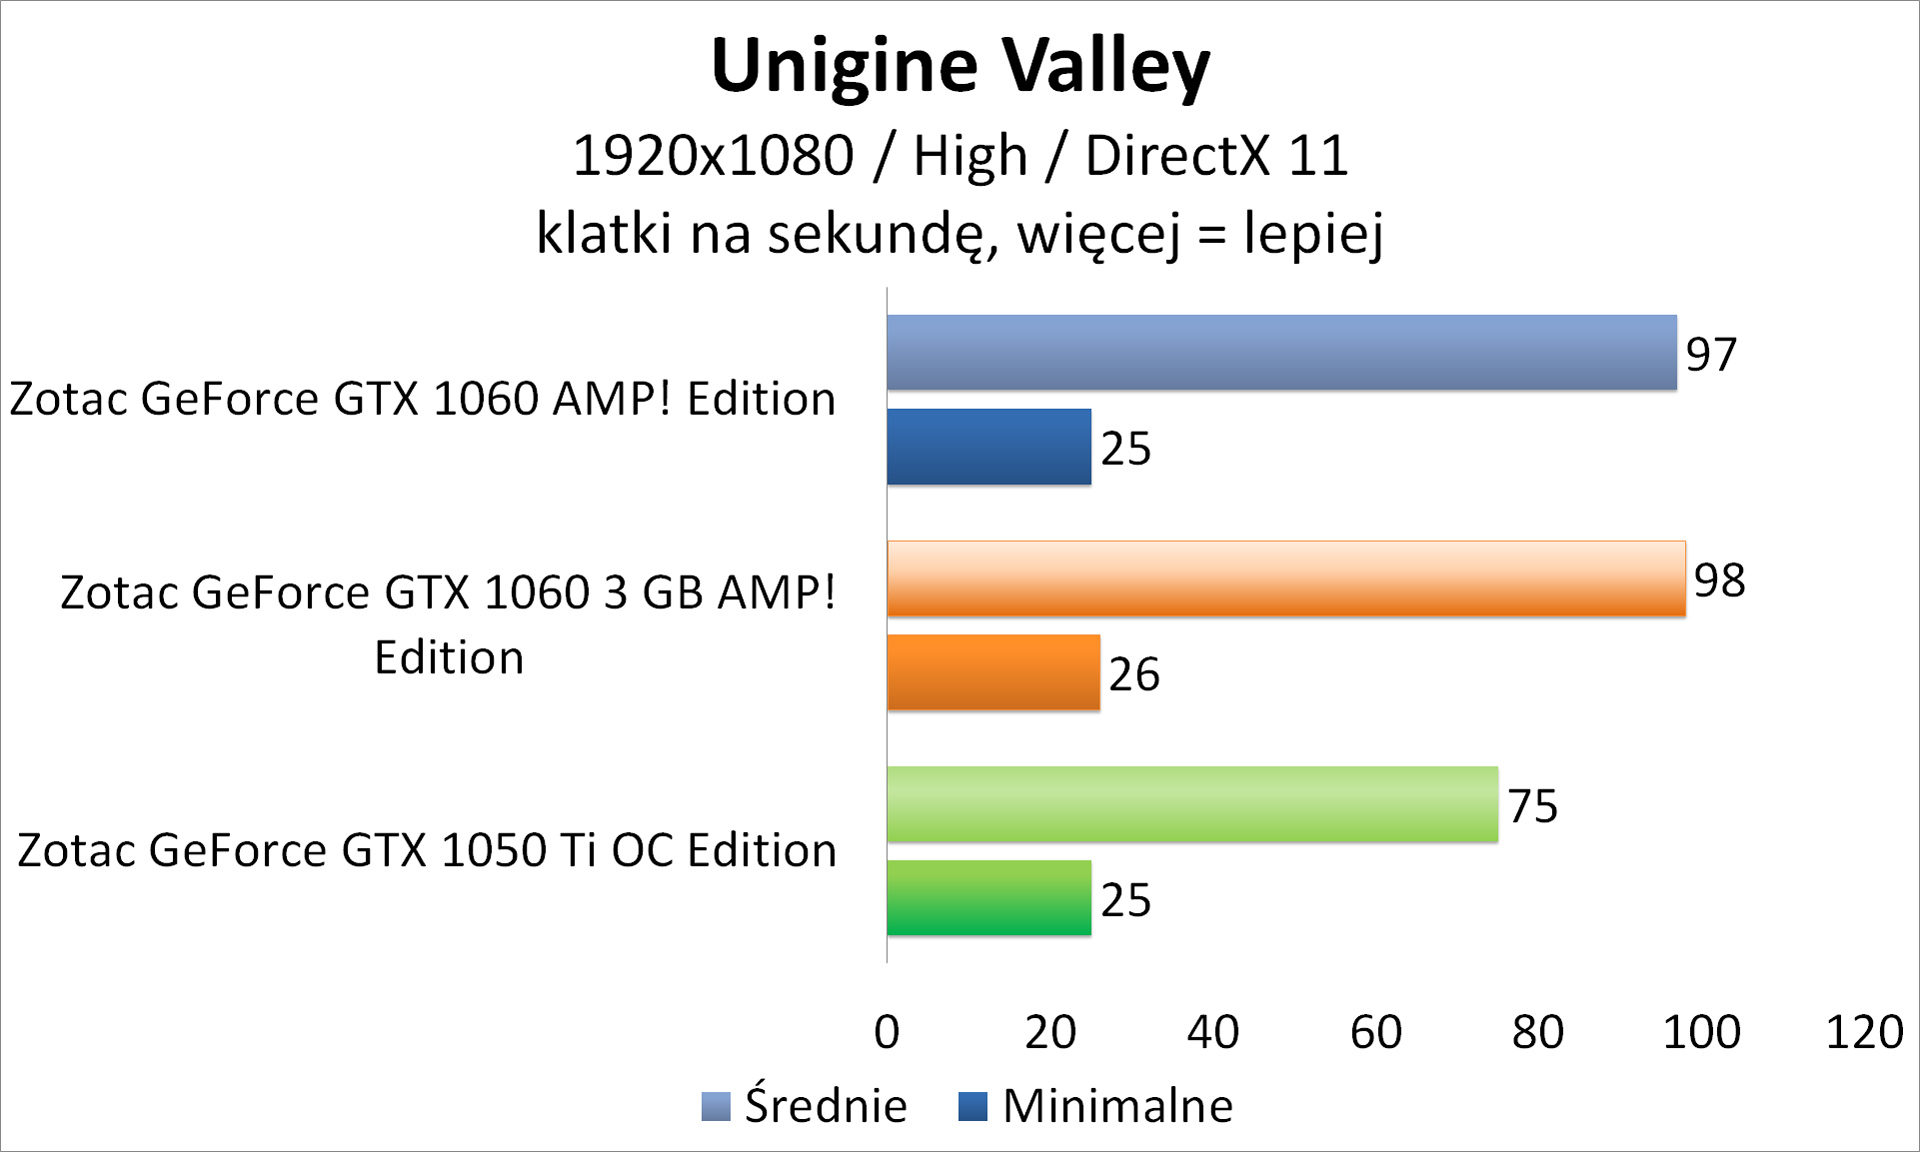 Zotac GeForce GTX 1050 Ti OC Edition - Unigine Valley